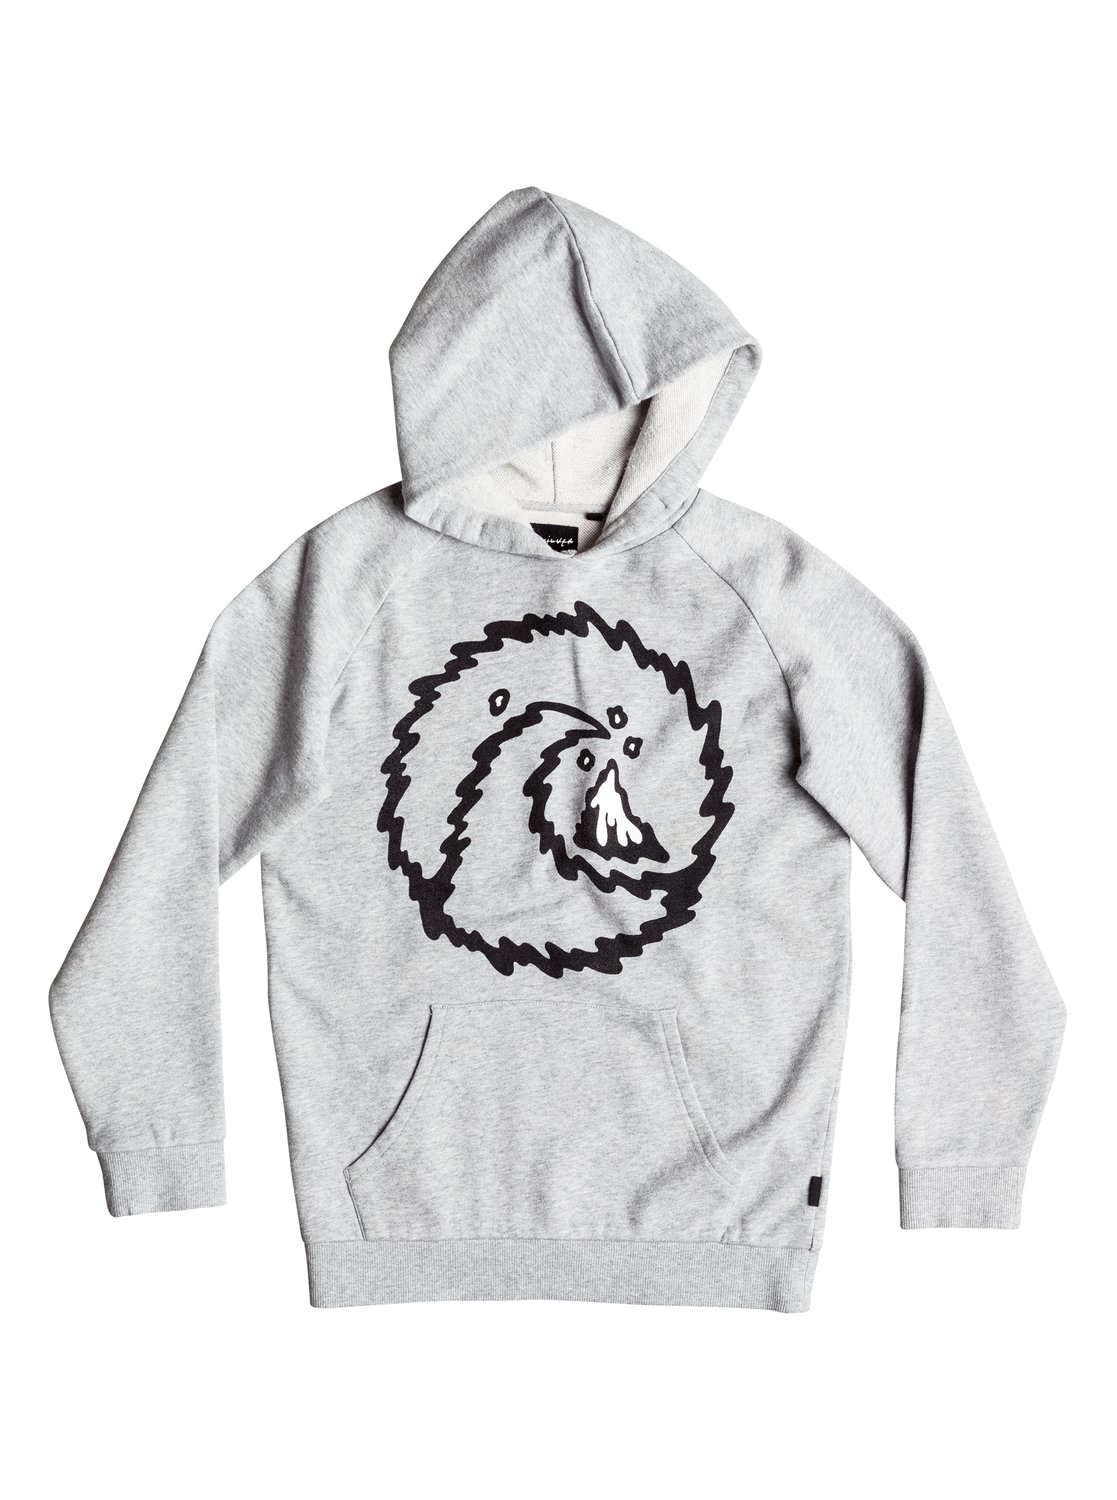 Dirty Old Town - HoodieWith a medium-weight fabric and easy pullover design, this boys hoodie works all year round. Featuring mountain and wave graphics from this season's art pack and a slightly longer regular fit, you just have to pick your favourite from simple grey or jet black.<br>